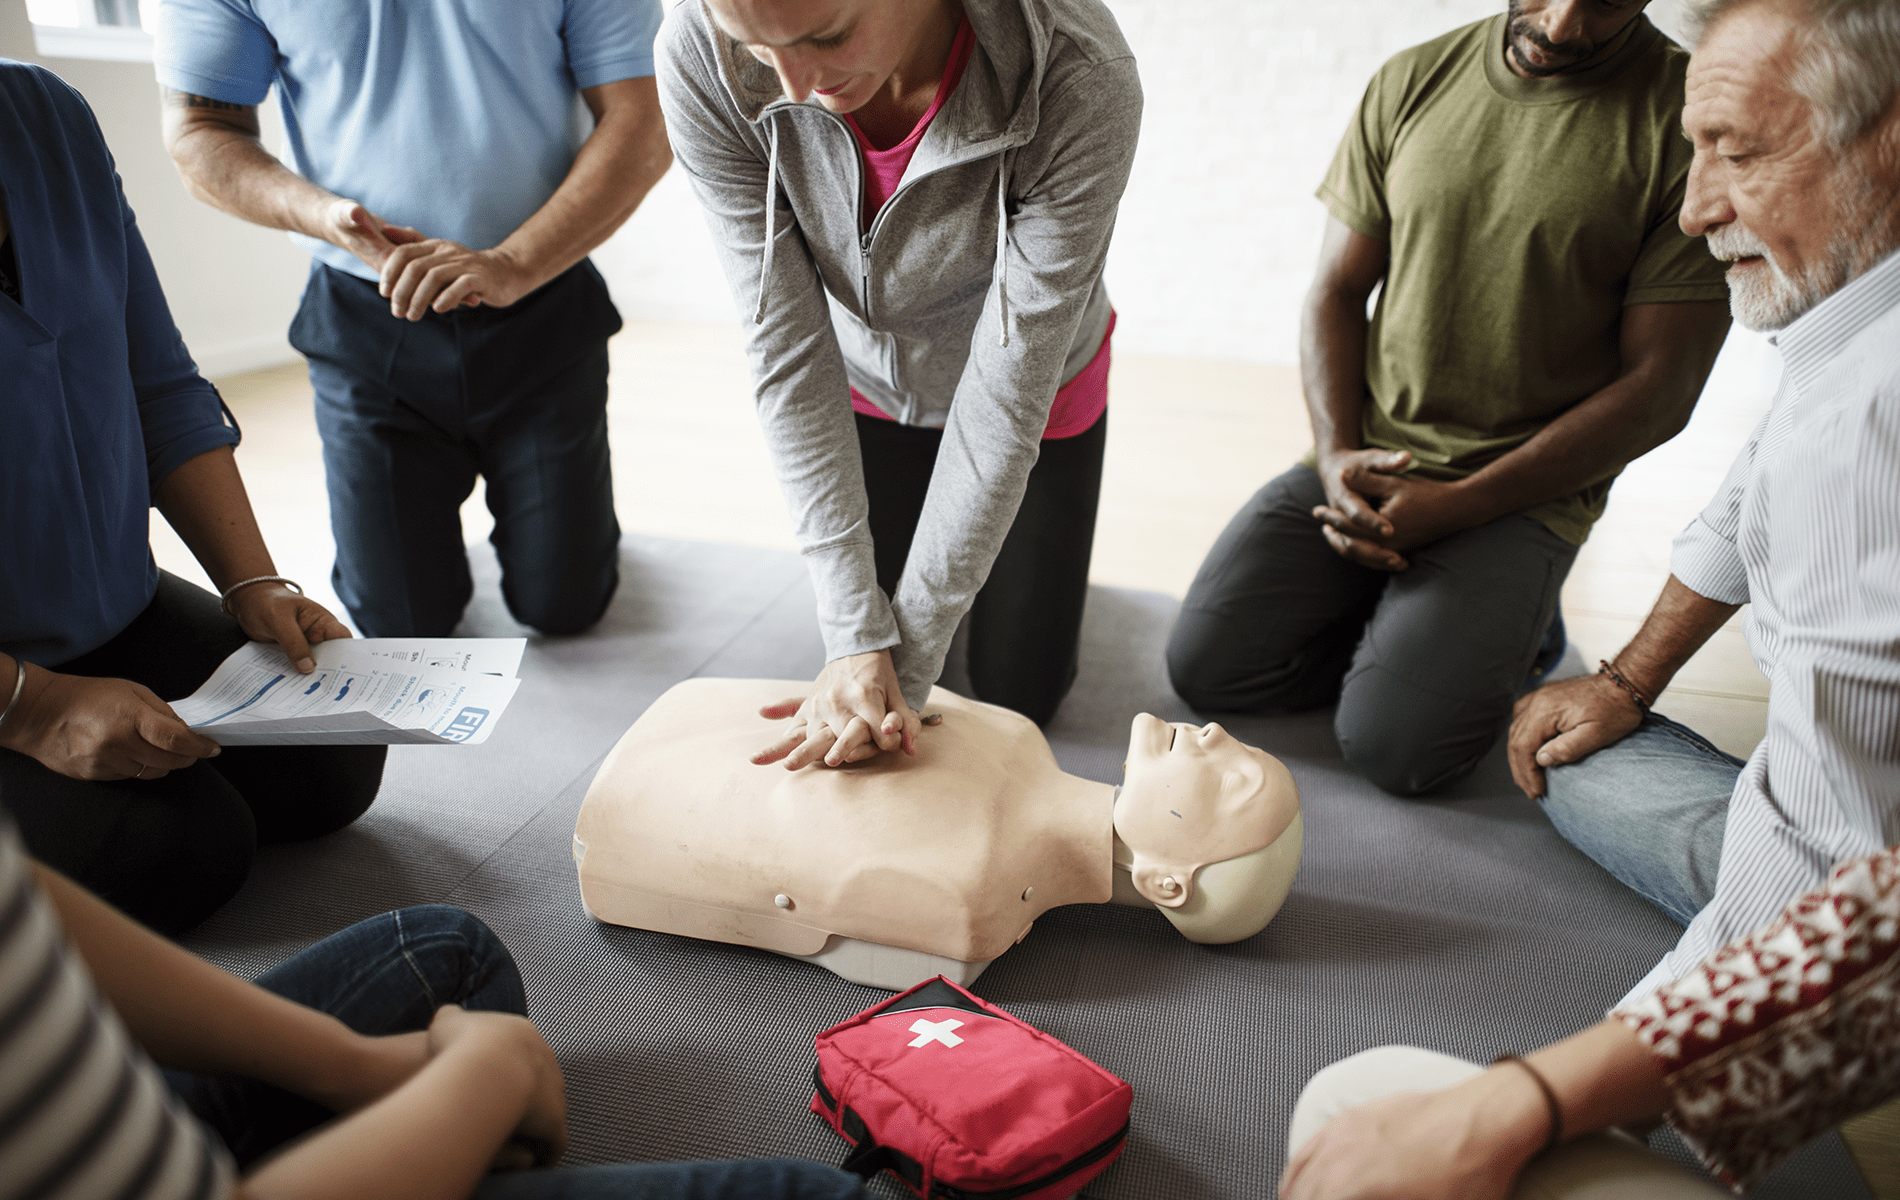 BLS Training from Quality Career Pathways